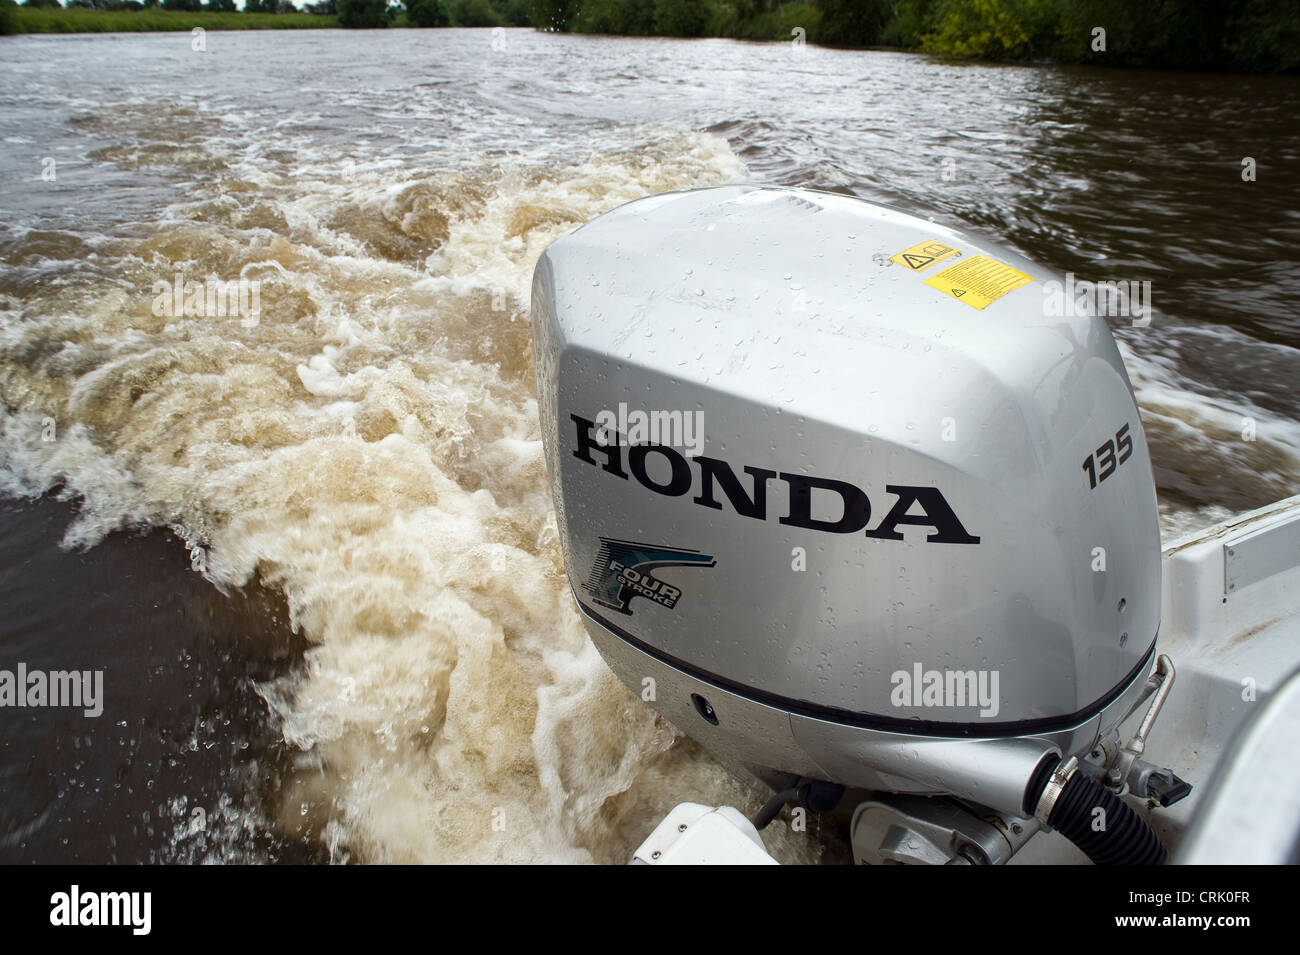 sale honda grb motors hp for products used outboard motor